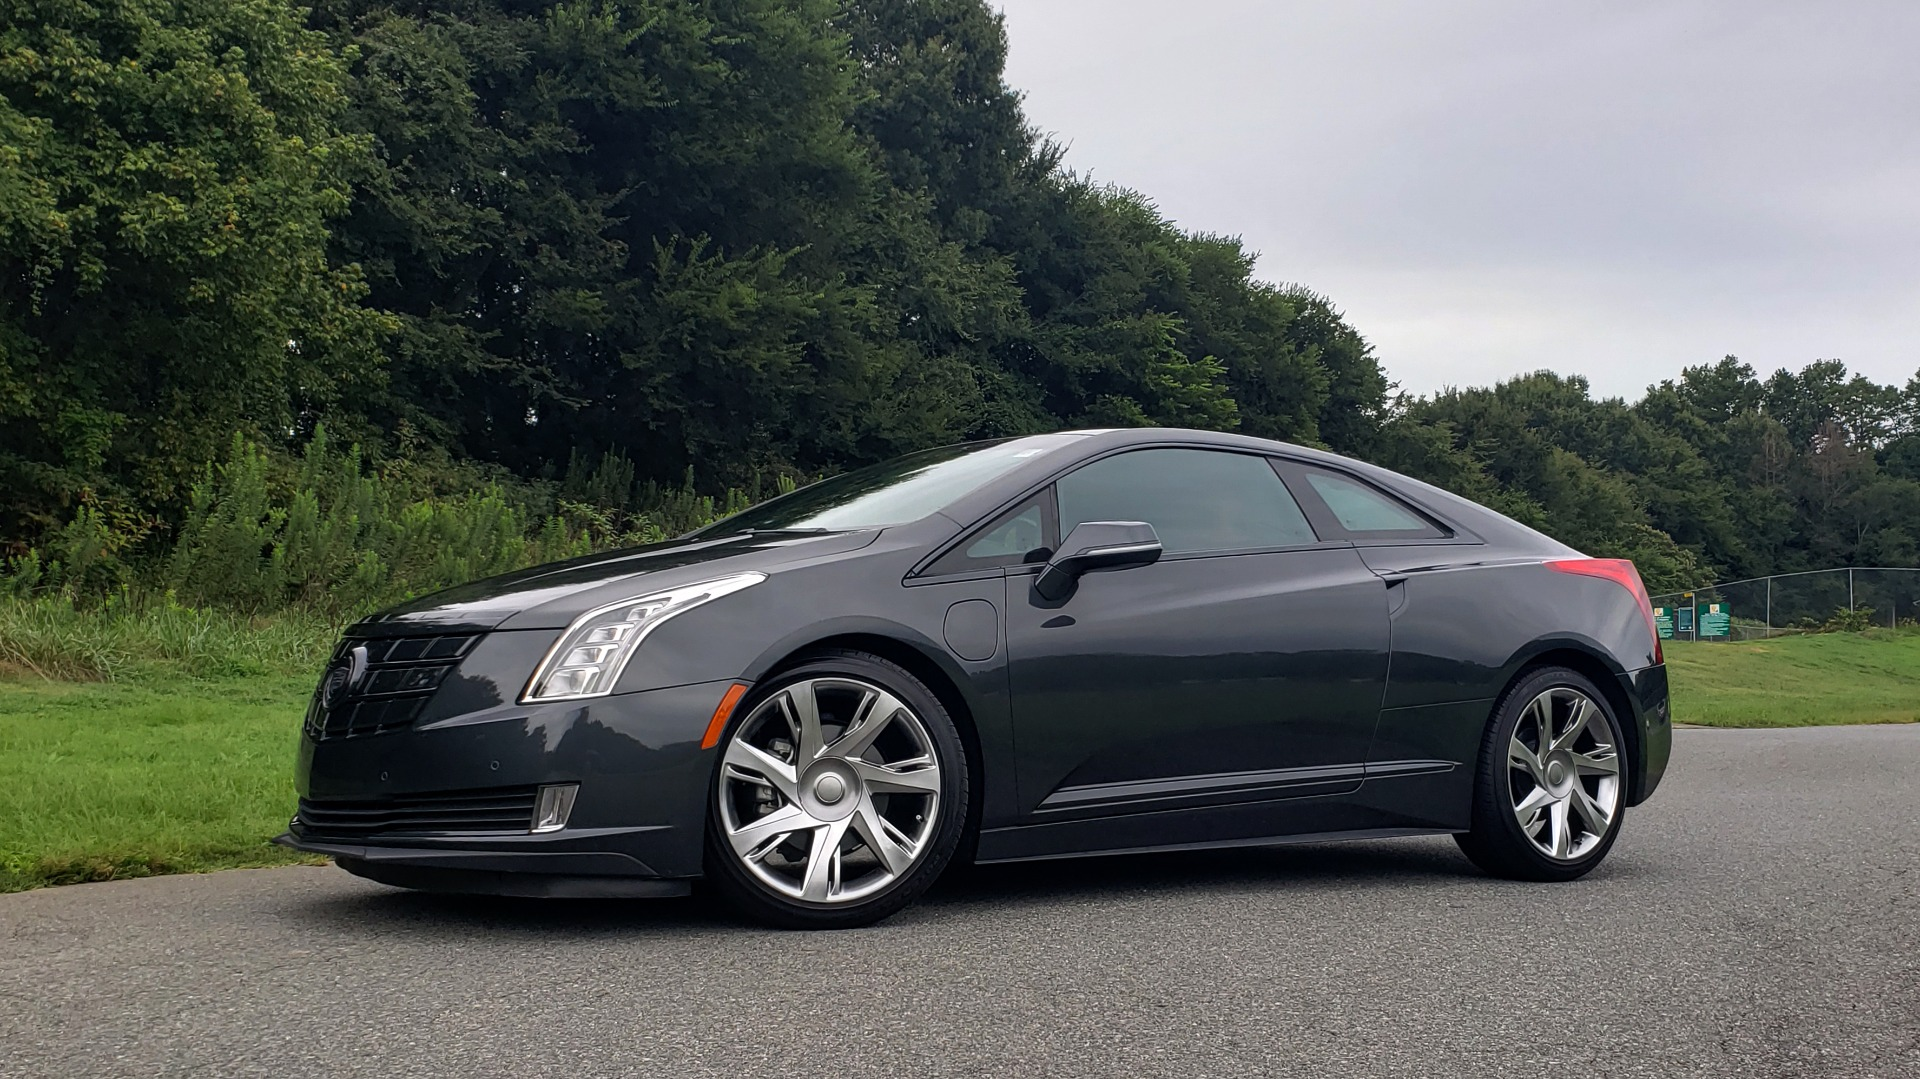 Used 2014 Cadillac ELR 2DR COUPE / HYBRID / NAV / BOSE / HEATED SEATS / REARVIEW for sale $34,000 at Formula Imports in Charlotte NC 28227 2